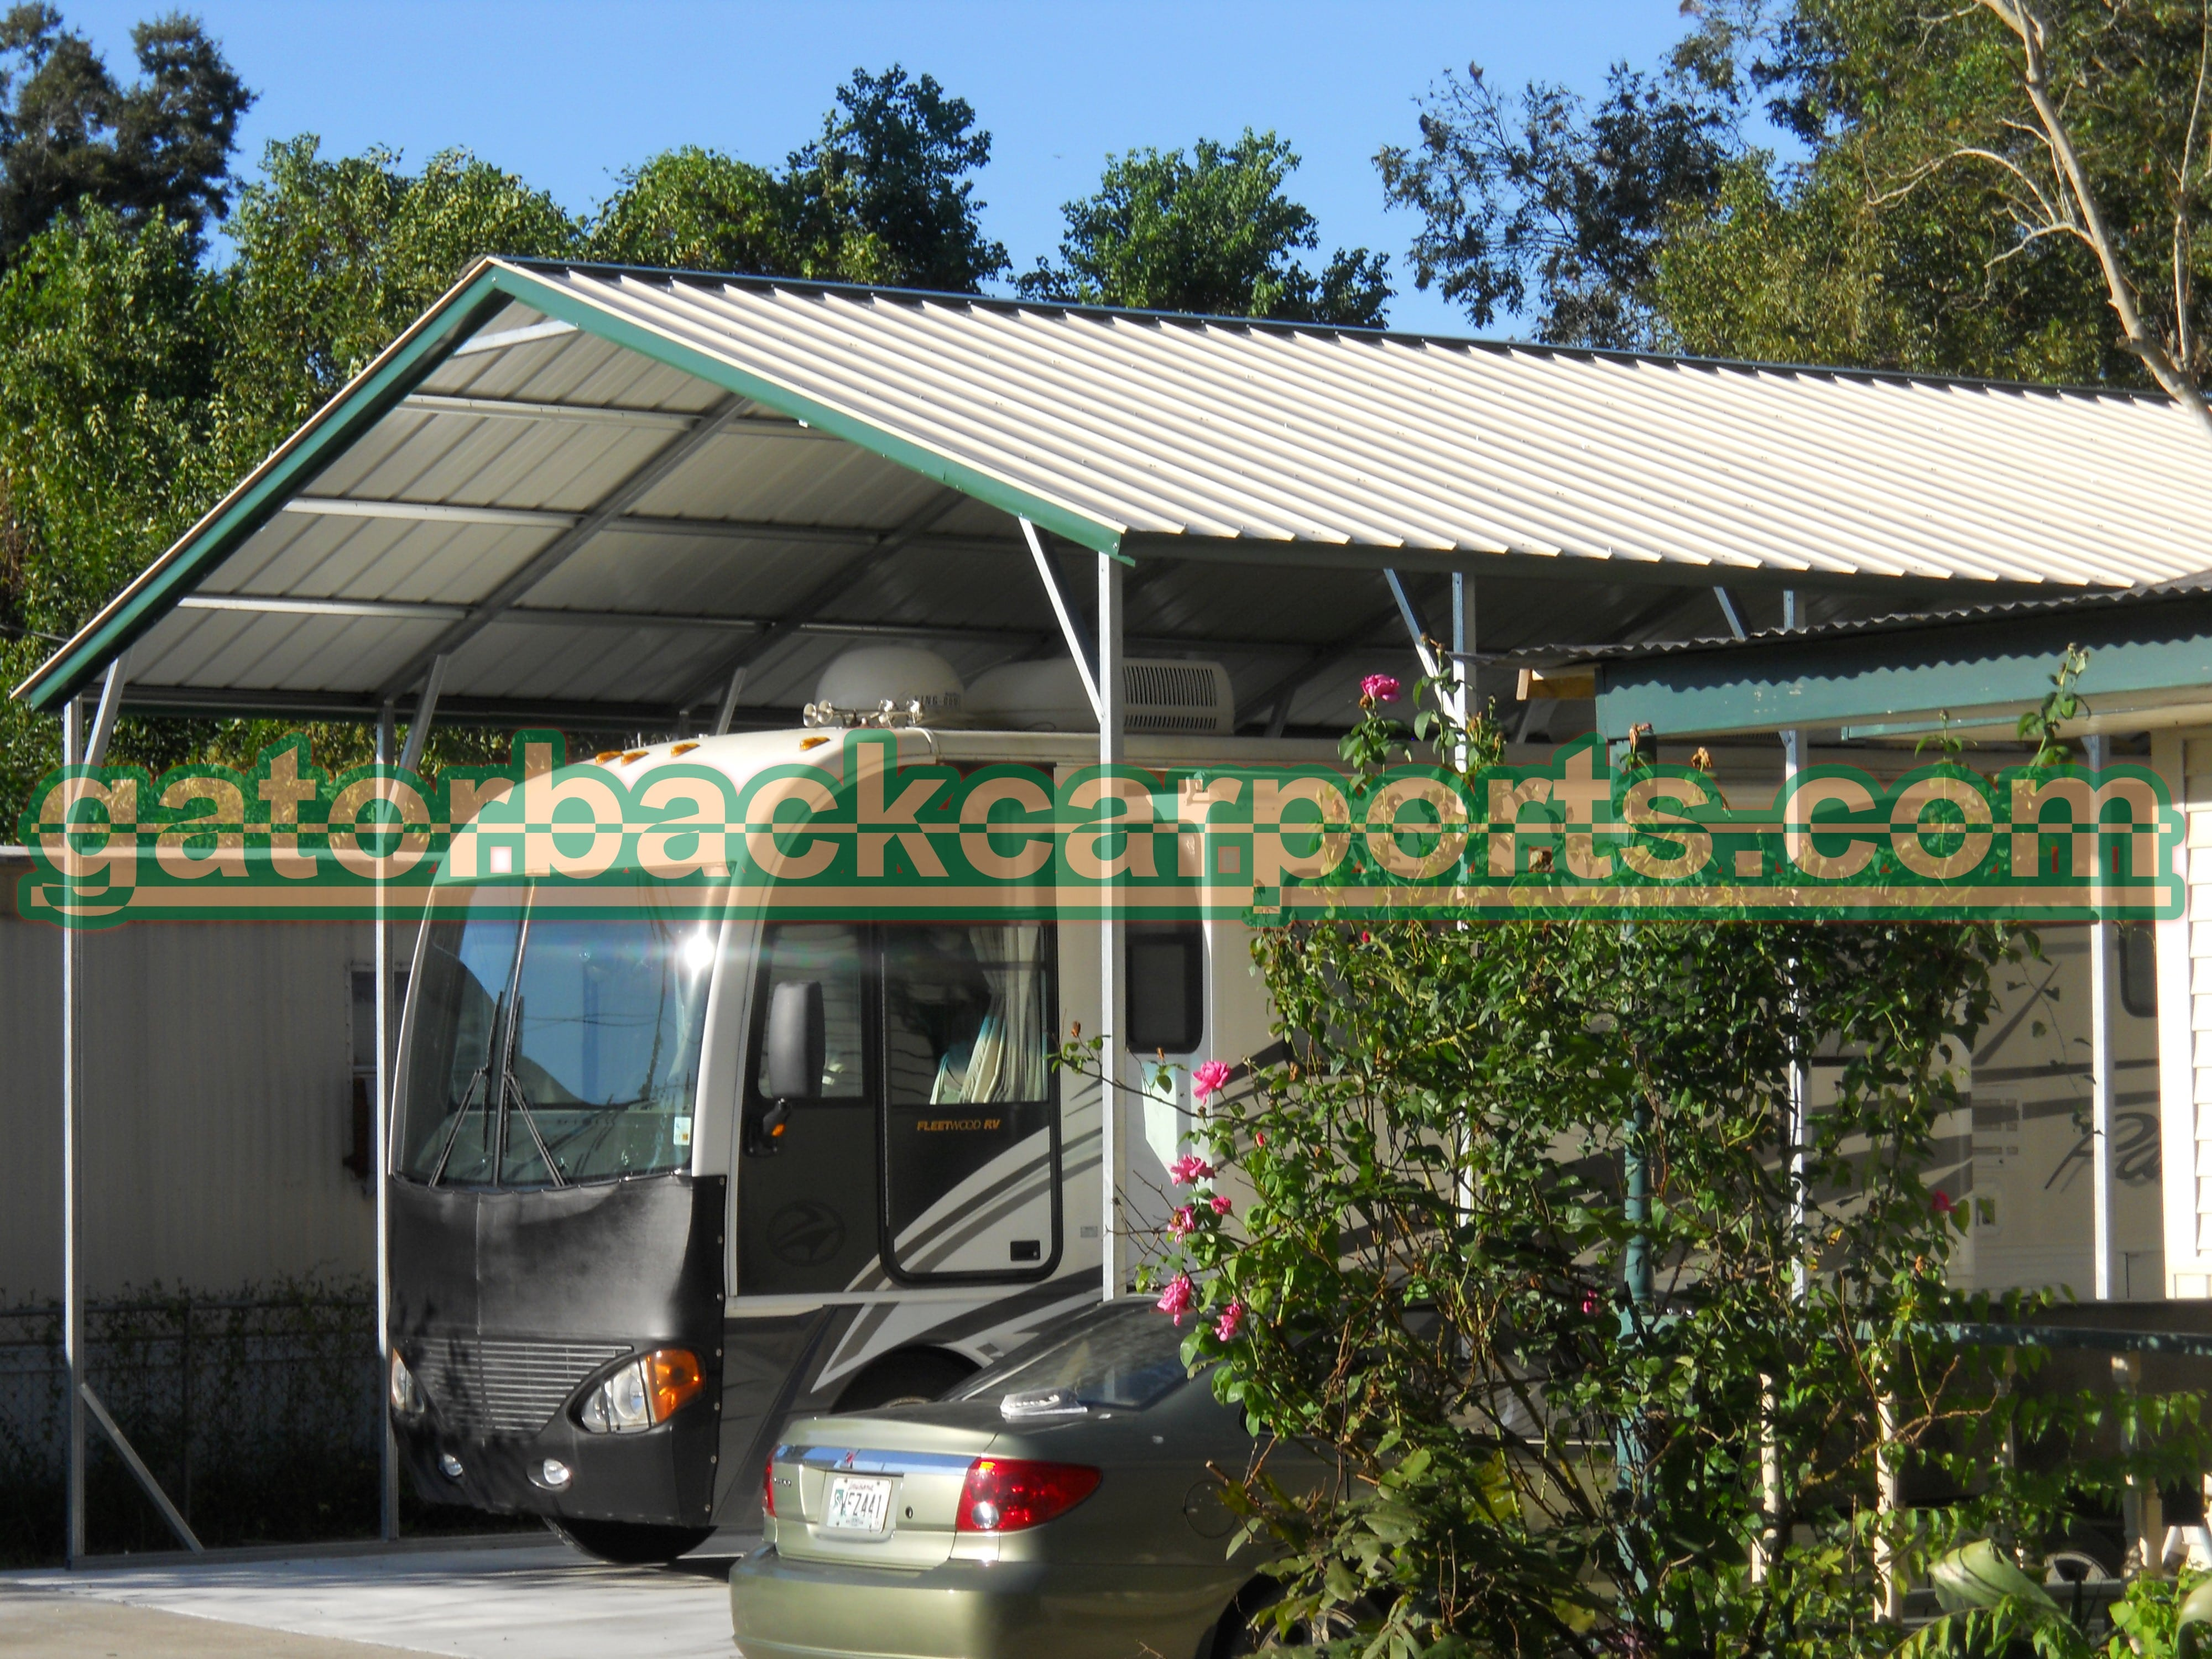 vertical roof Carport system & RV Carports RV Covers RV Garages - Gatorback CarPorts